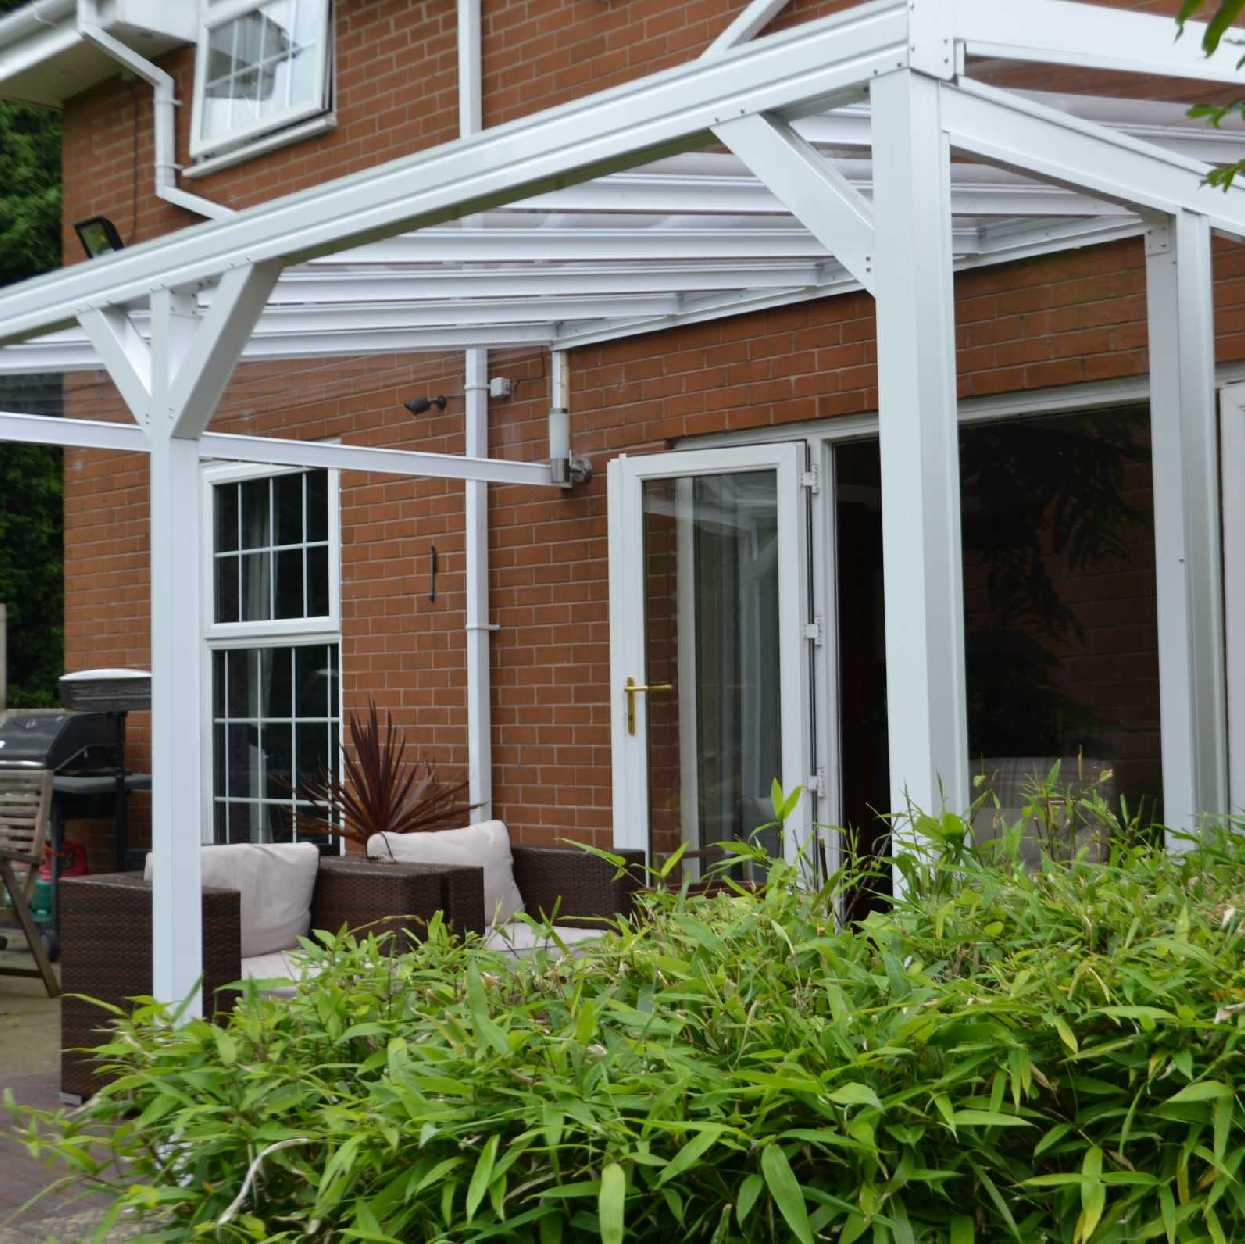 Omega Smart Lean-To Canopy with 6mm Glass Clear Plate Polycarbonate Glazing - 4.9m (W) x 2.5m (P), (3) Supporting Posts from Omega Build